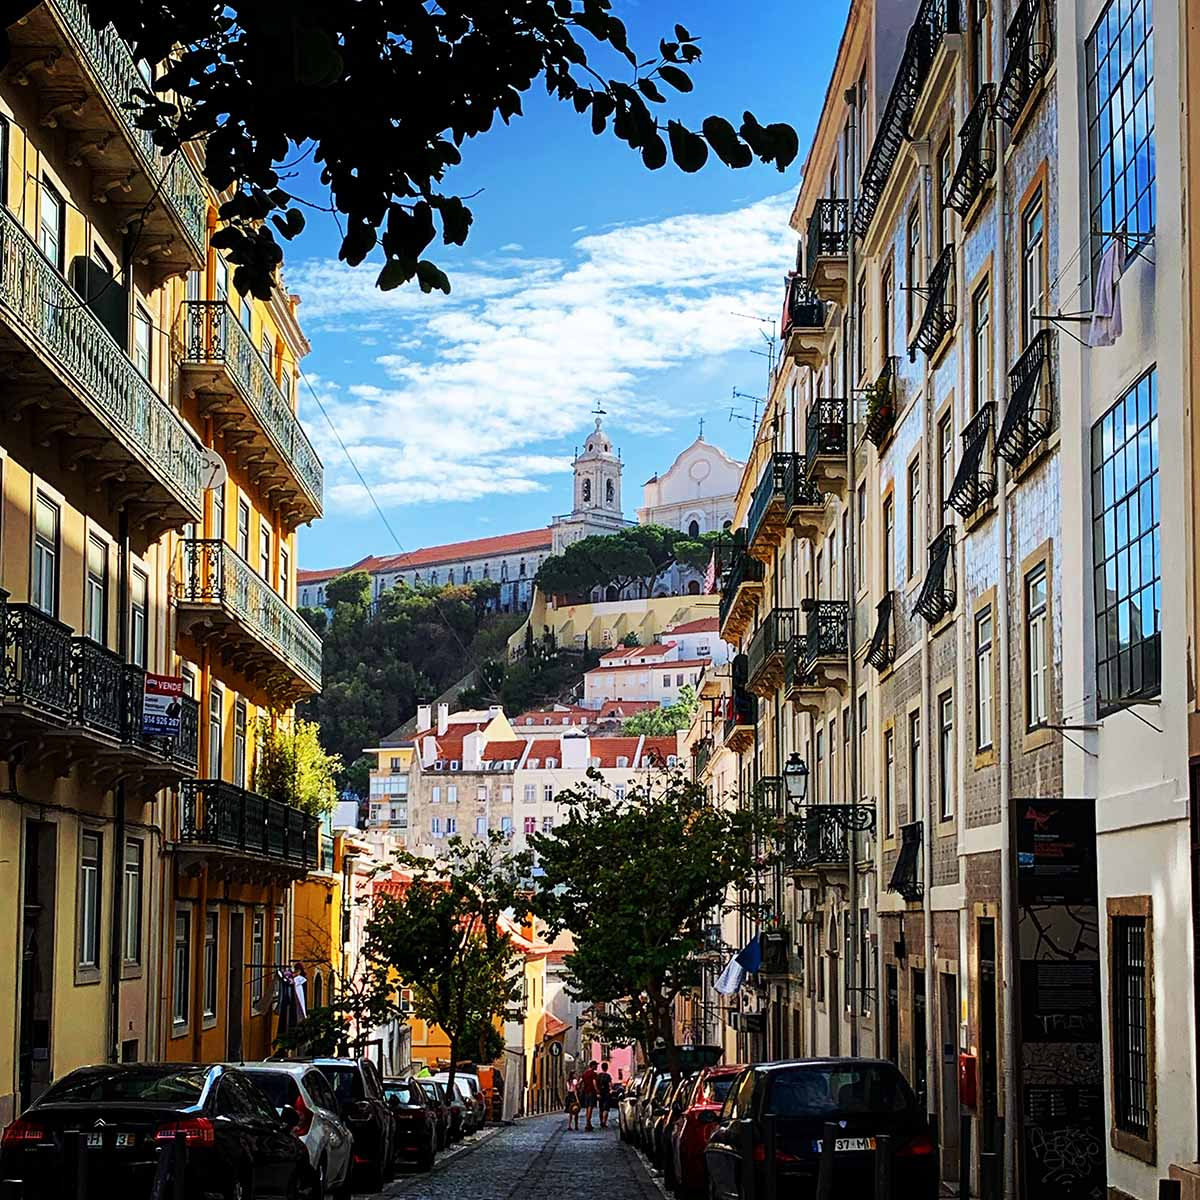 The colorful streets of Lisbon, Portugal